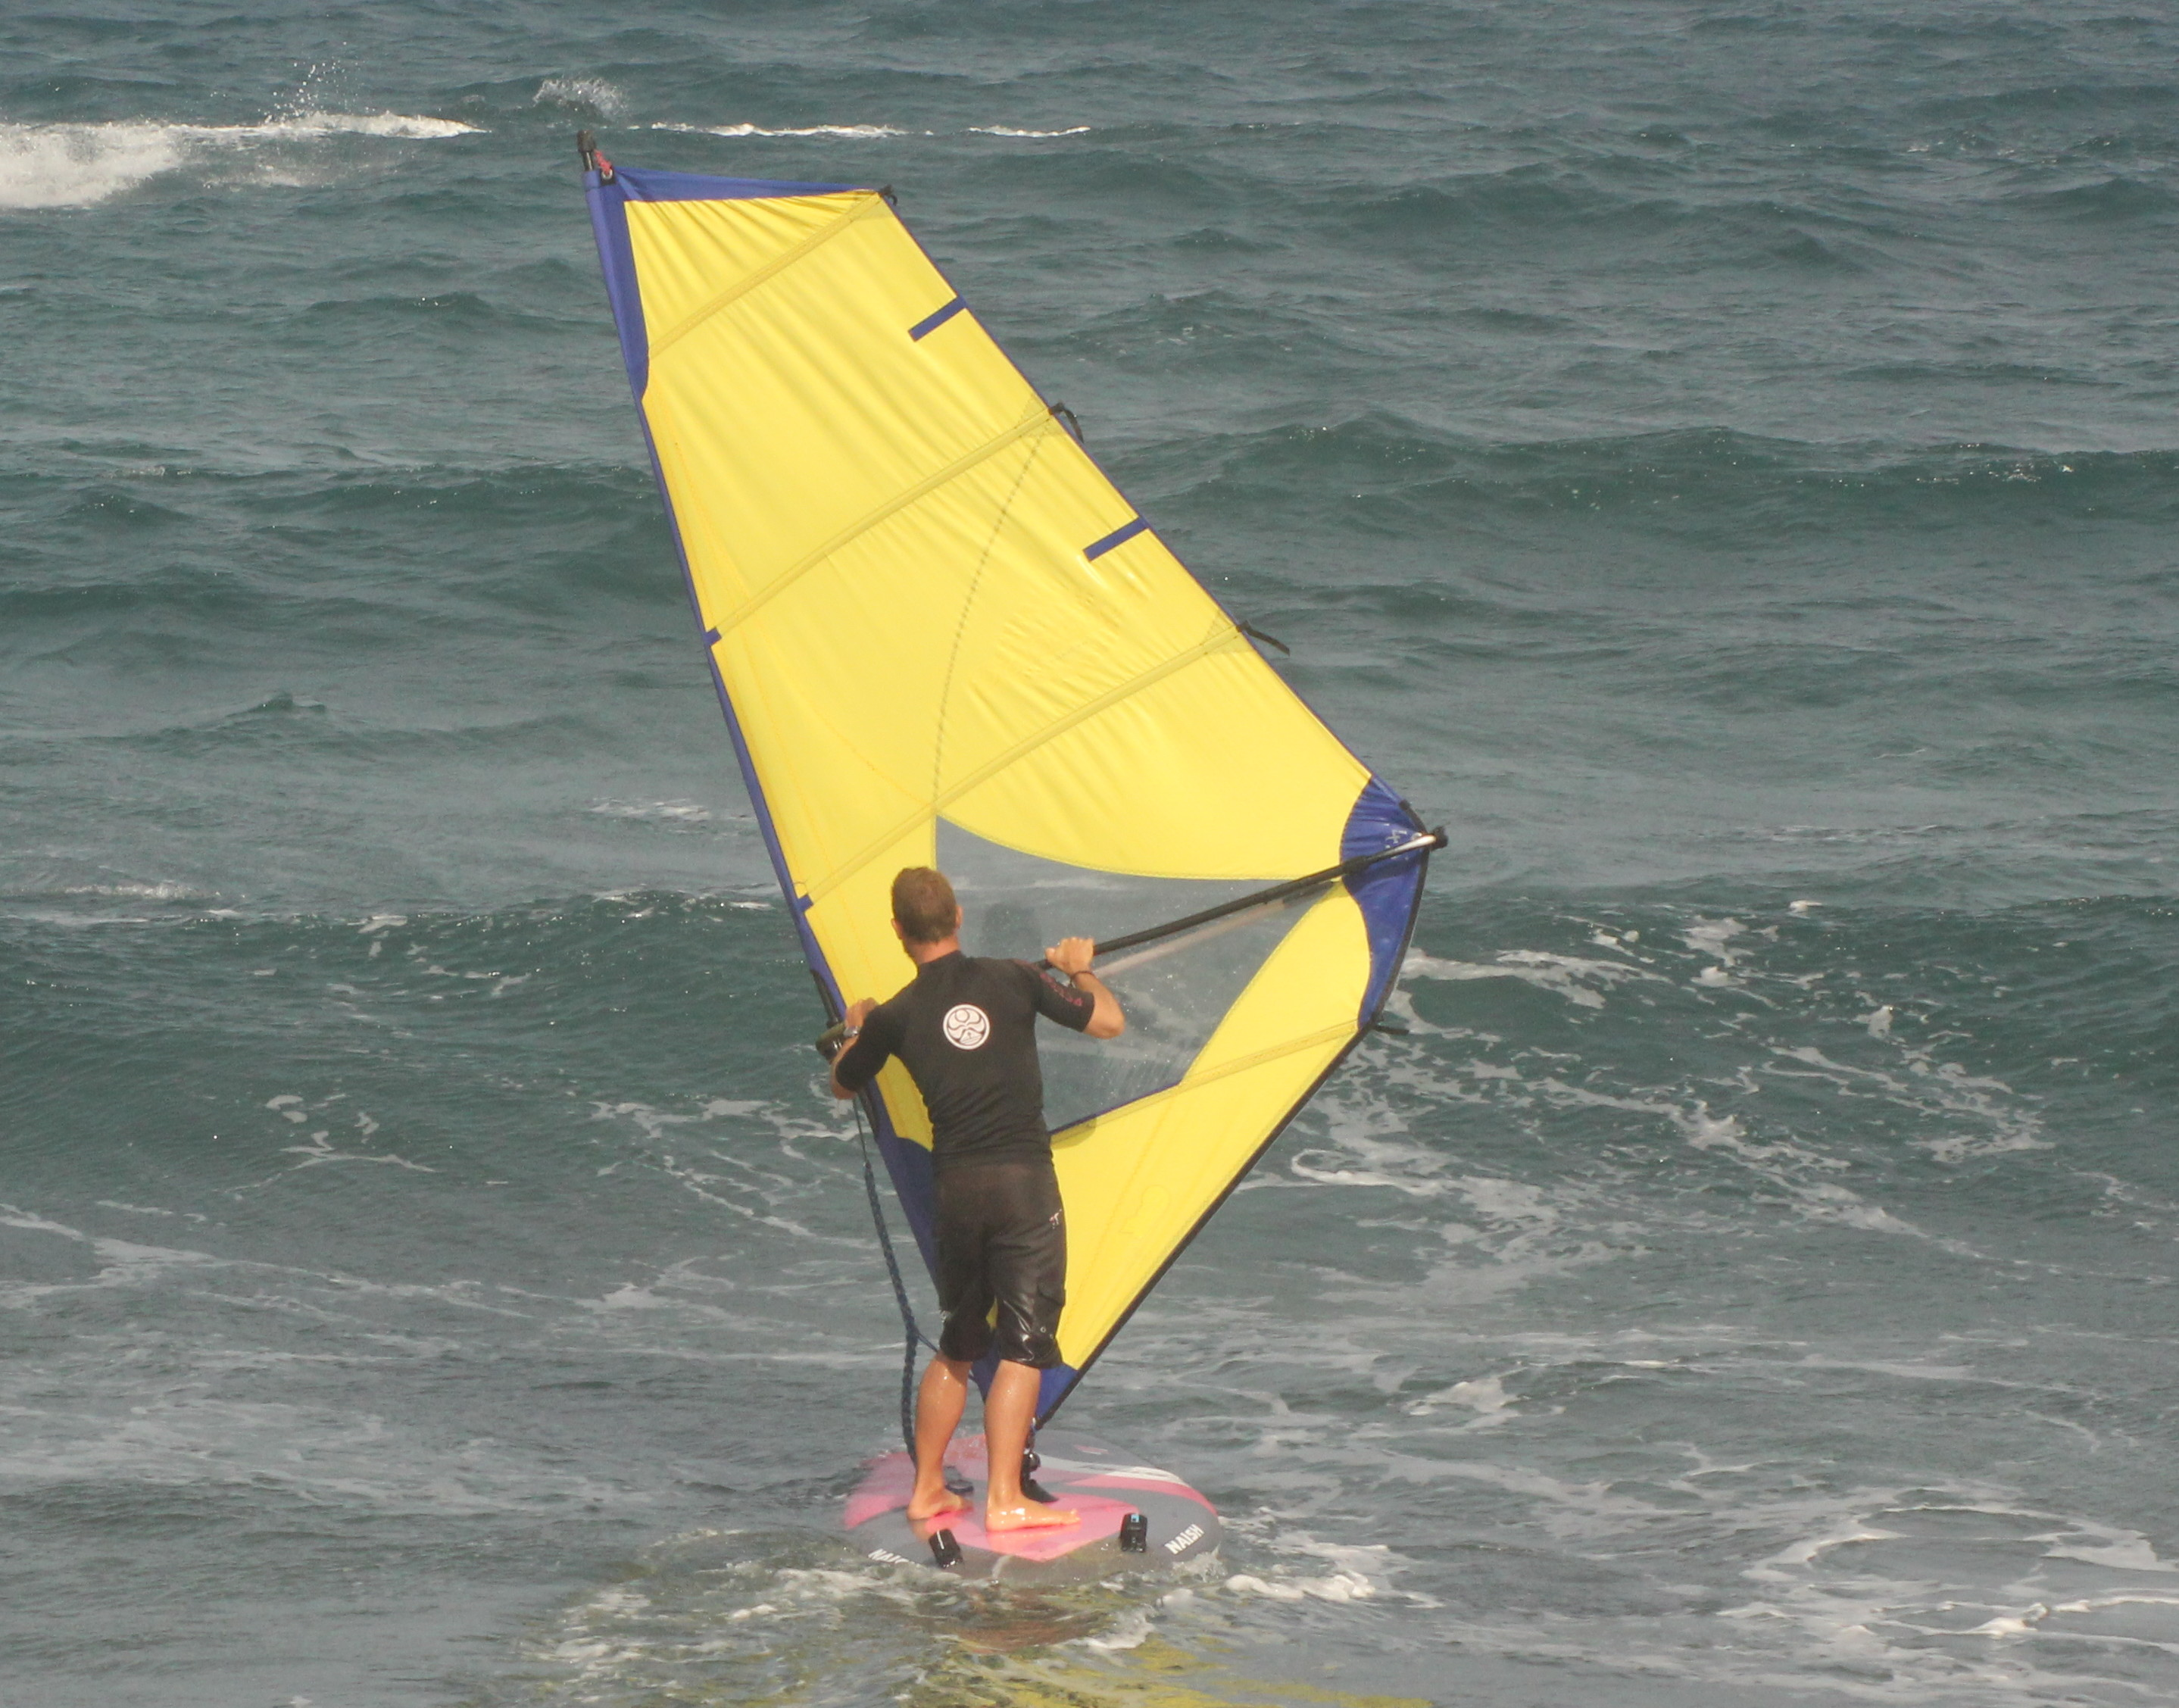 How to Stop a Windsurfer - Press sail against the wind